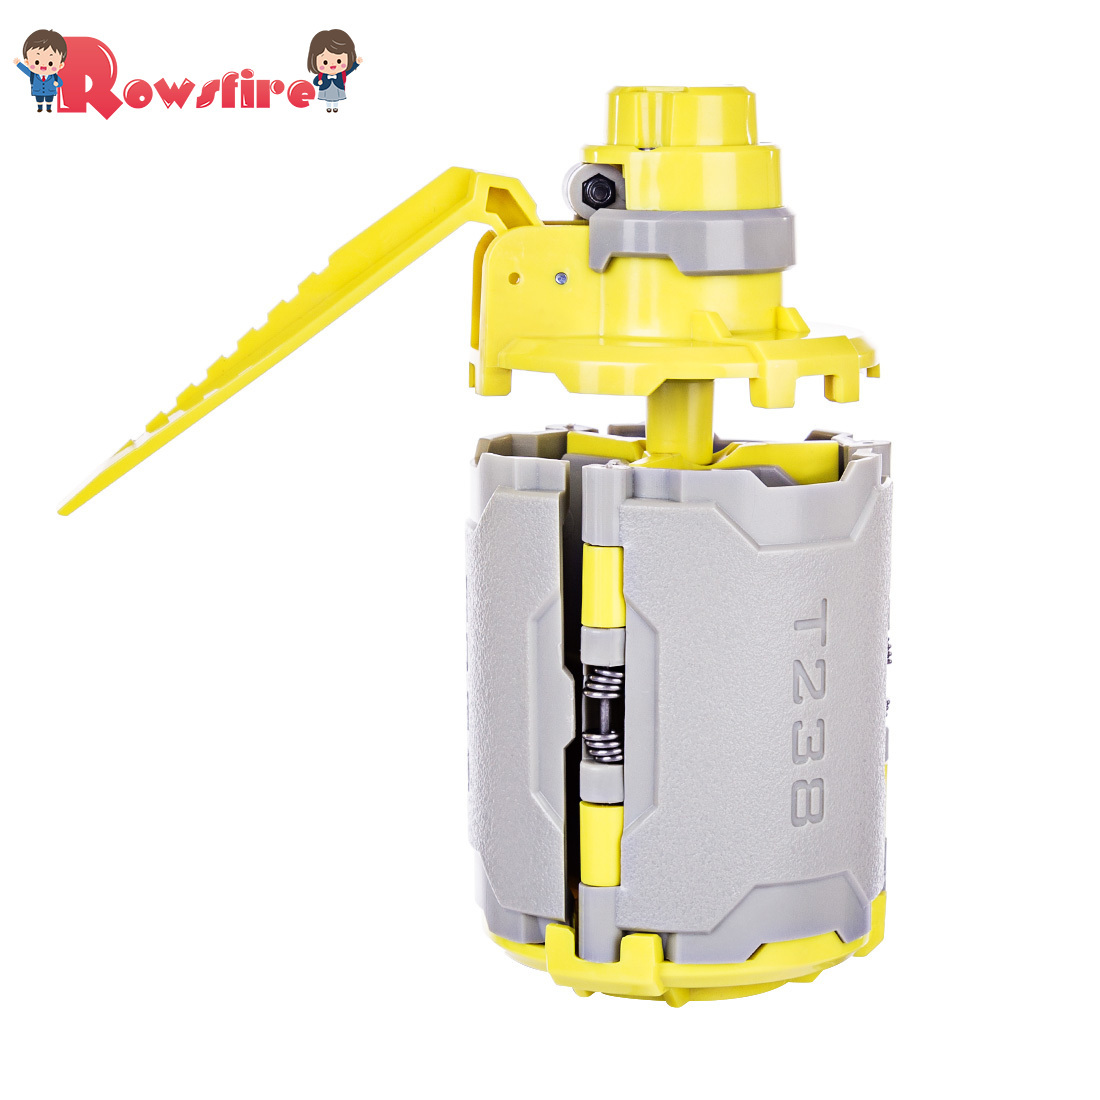 Rowsfire 1 Pcs <font><b>T238</b></font> <font><b>V2</b></font> Large Capacity Toy With Time-Delayed Function For Gel Ball BBs Airsoft Wargame - Grey + Yellow image